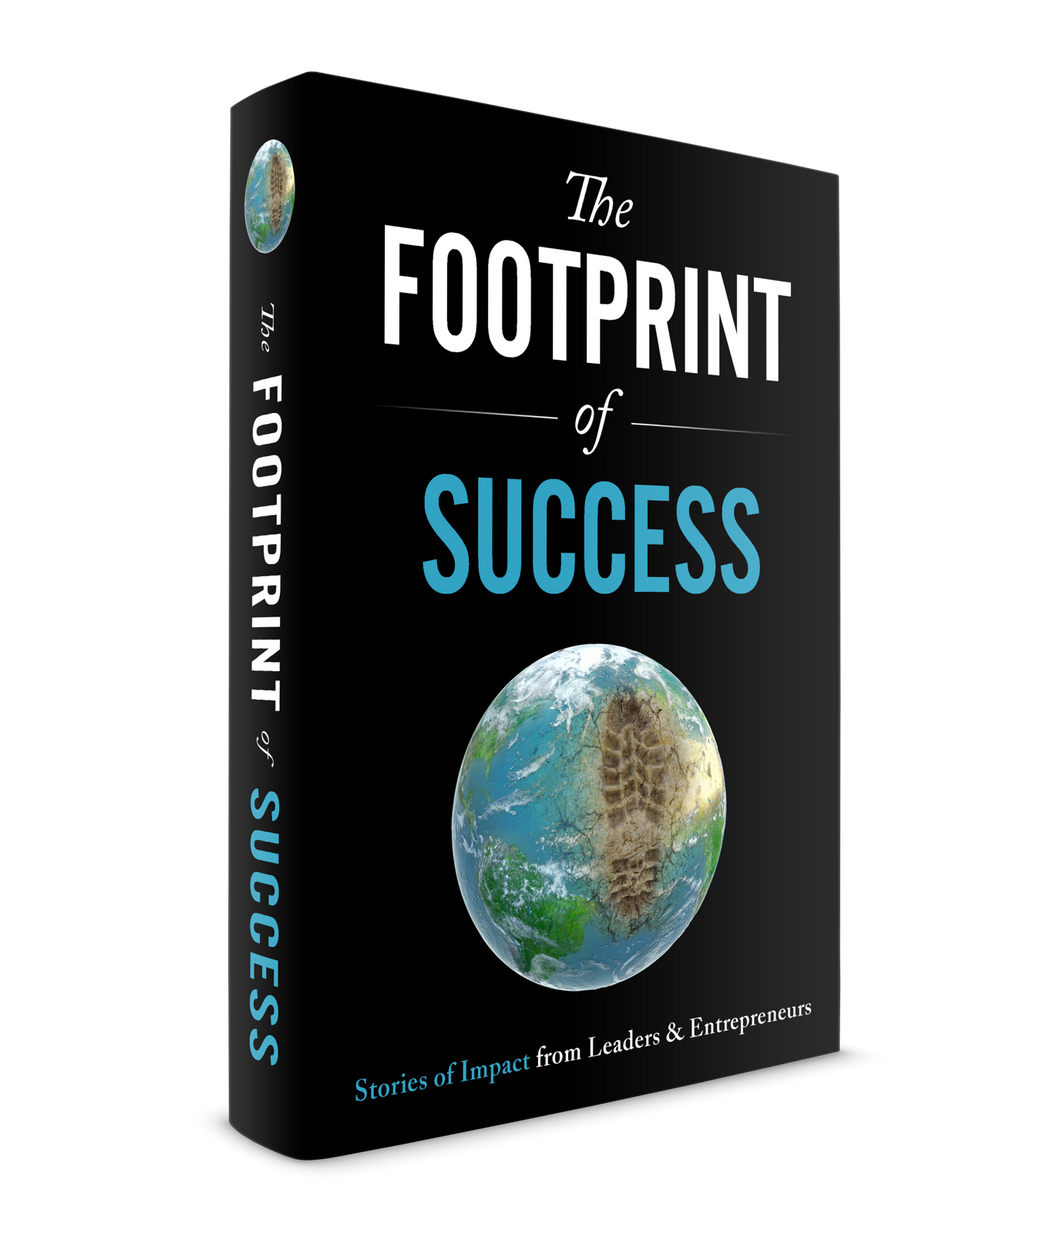 The Footprint of Success Stories of Impact from Leaders & Entrepreneurs